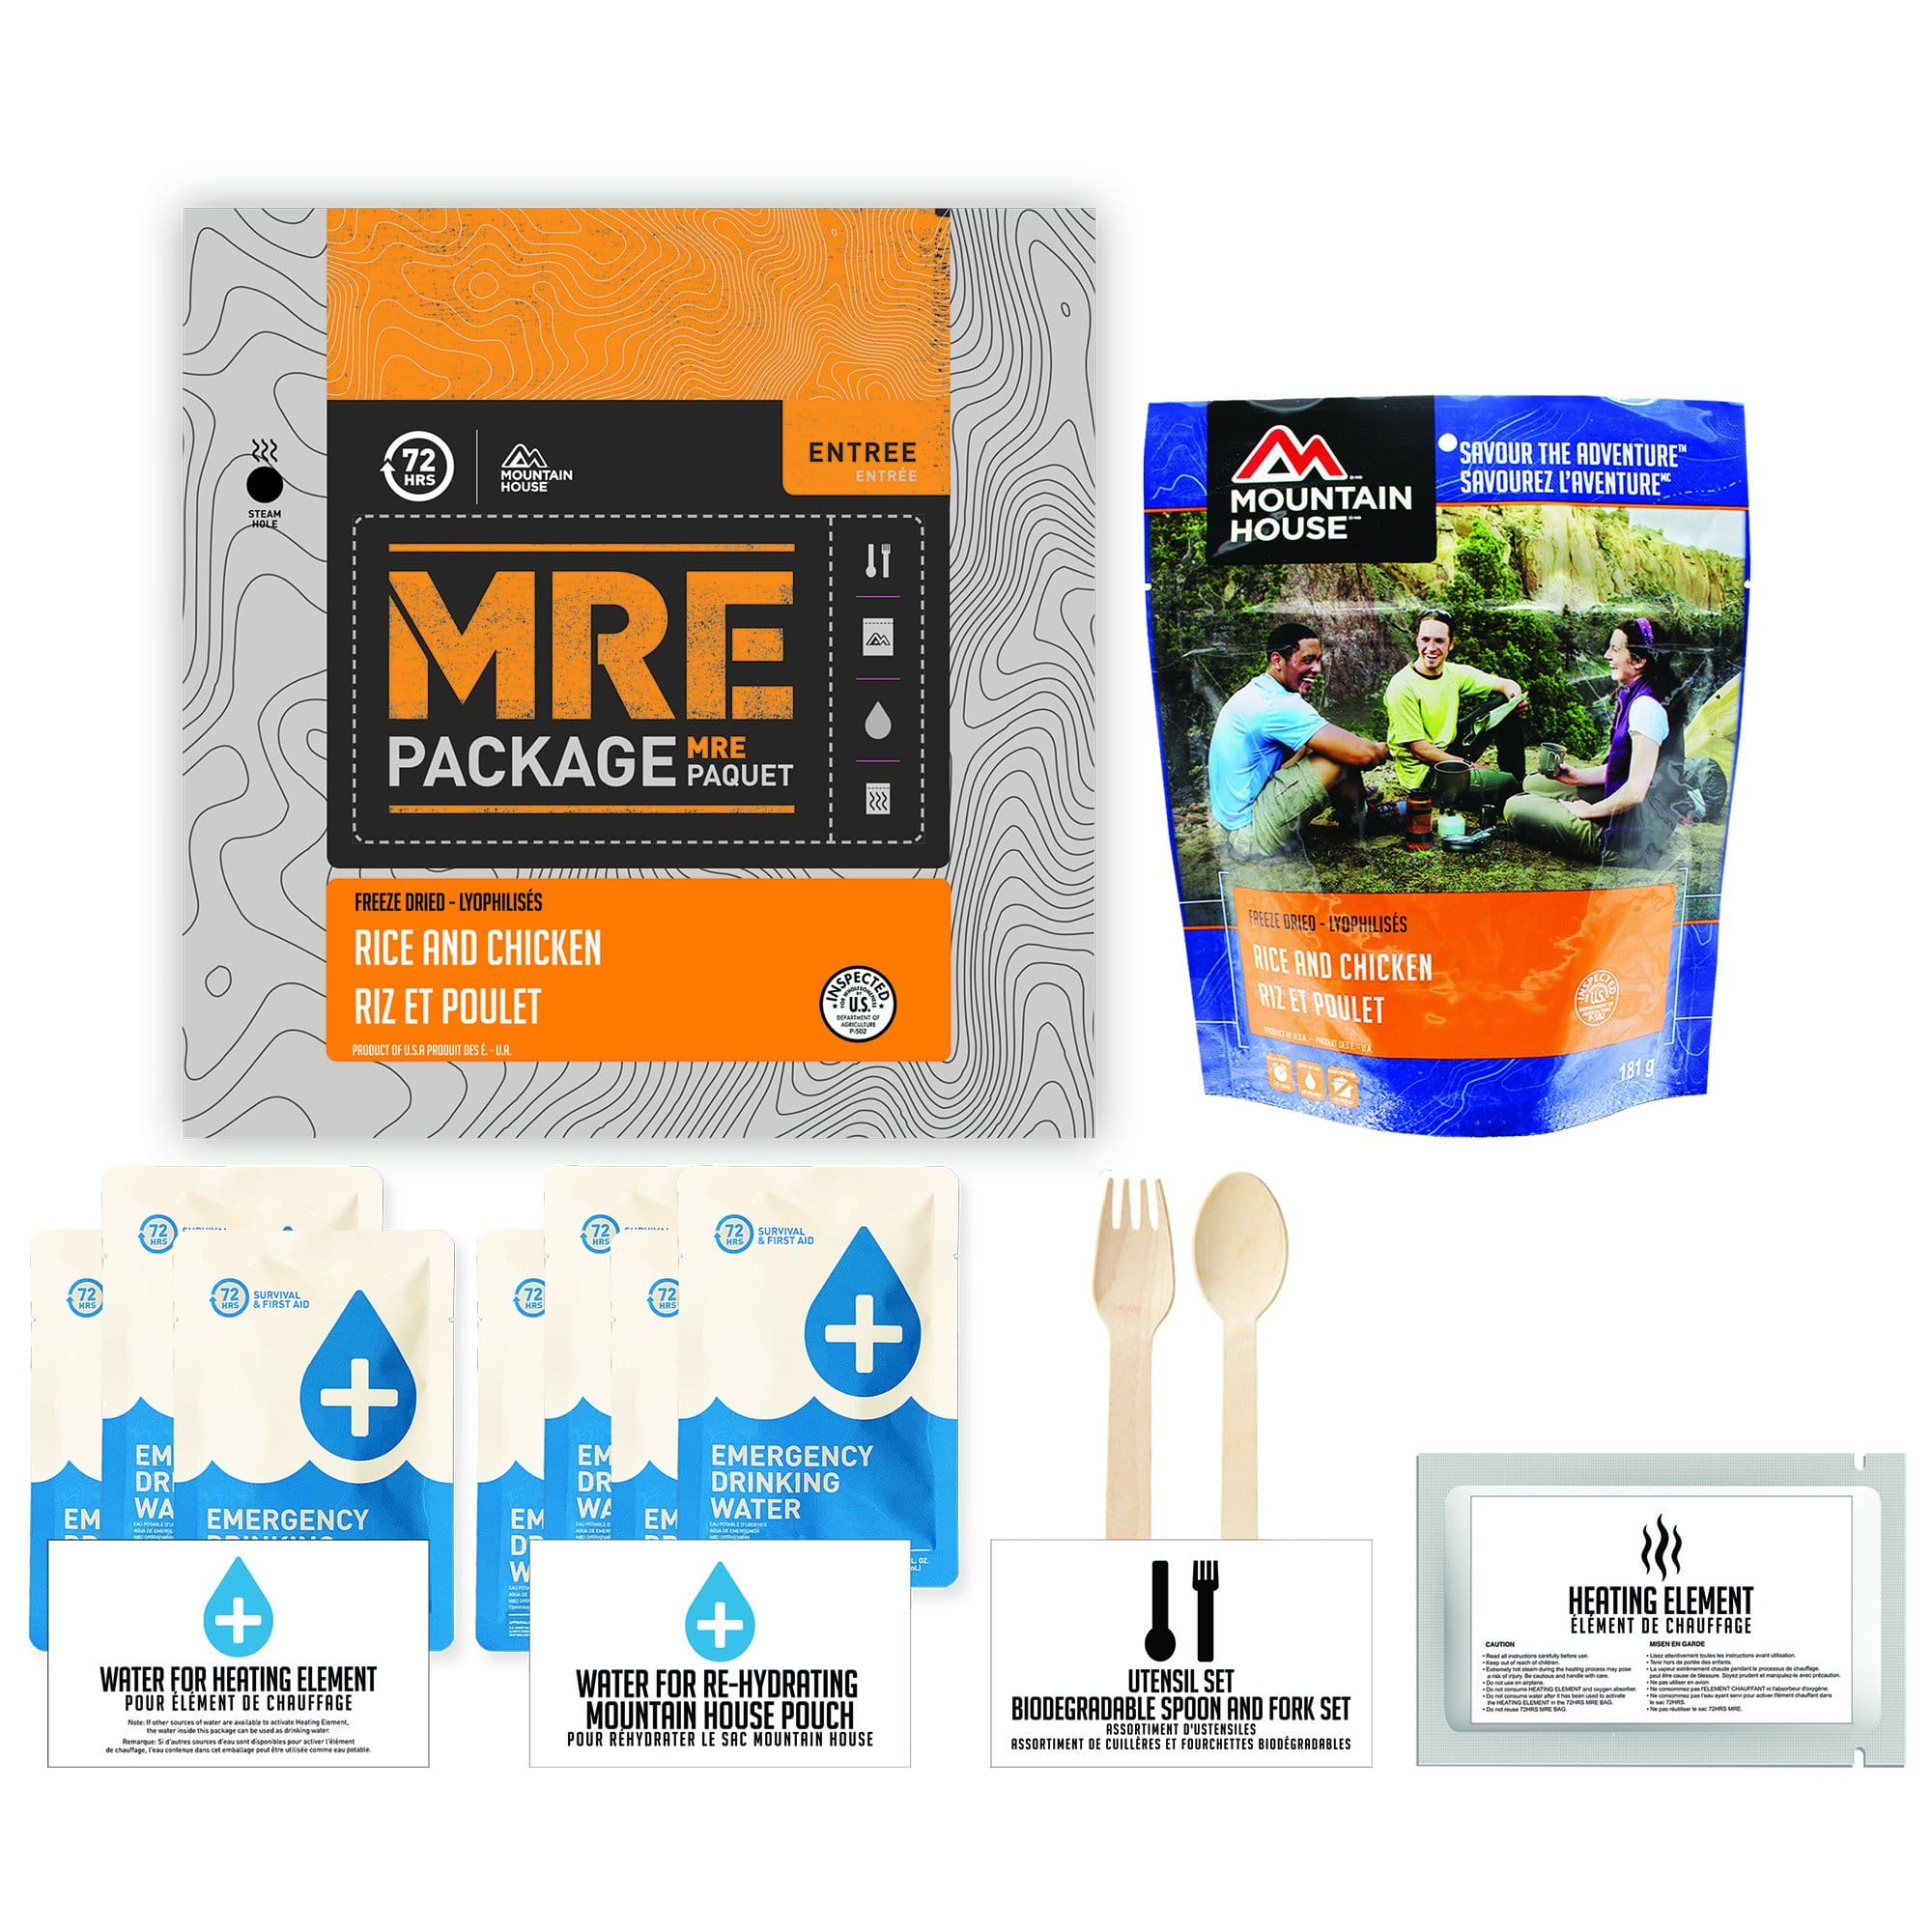 72 HOURS MRE Package Mountain House Rice and Chicken Pouch - Emergency Food Pack